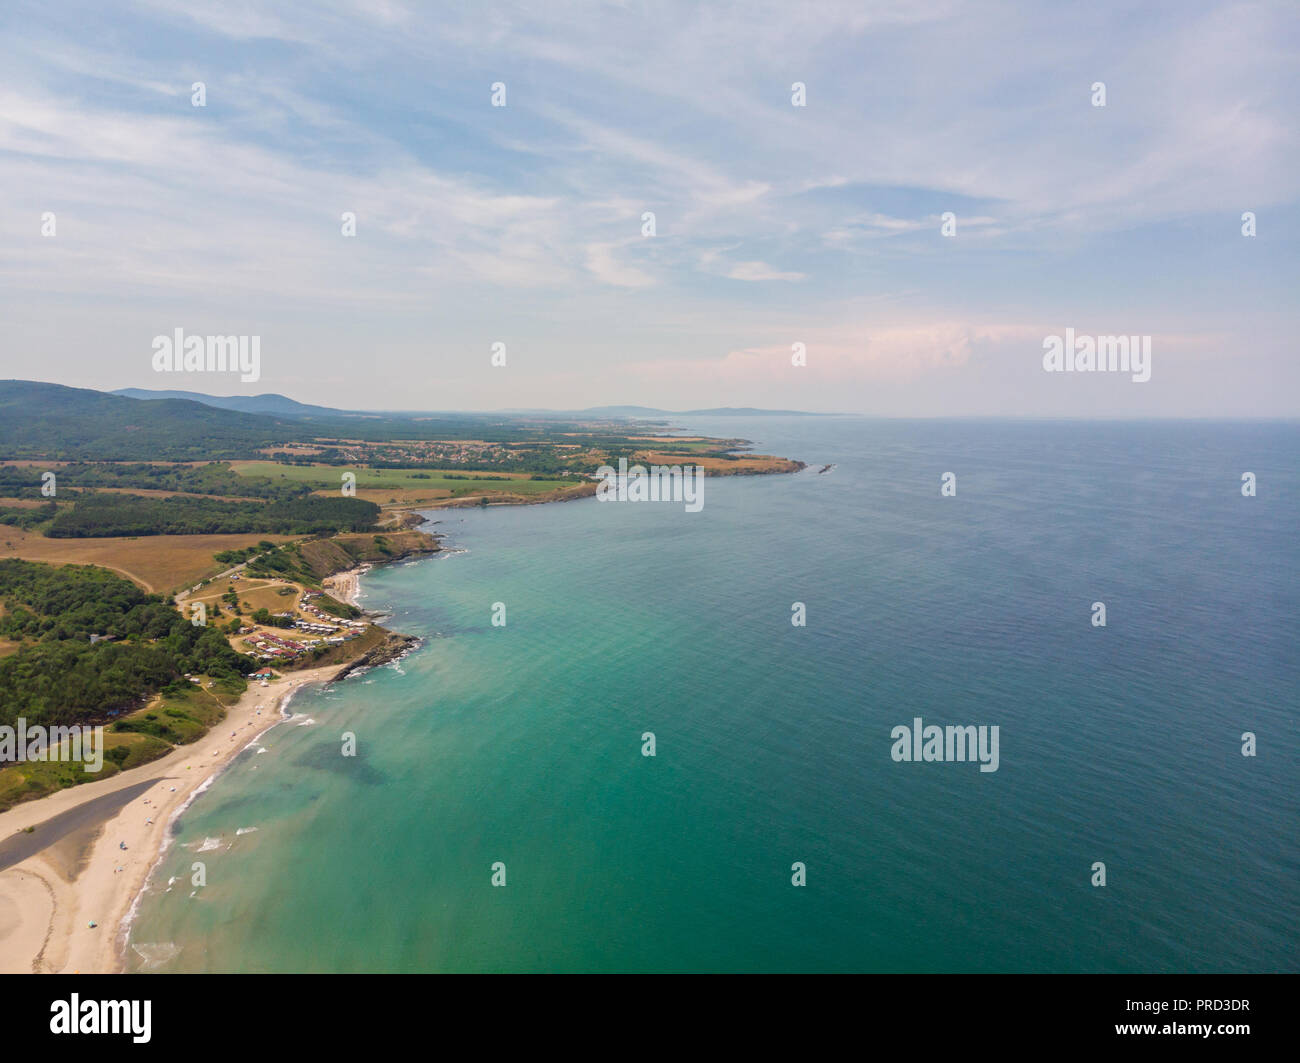 Aerial view of Delphin resort, Bulgaria. - Stock Image